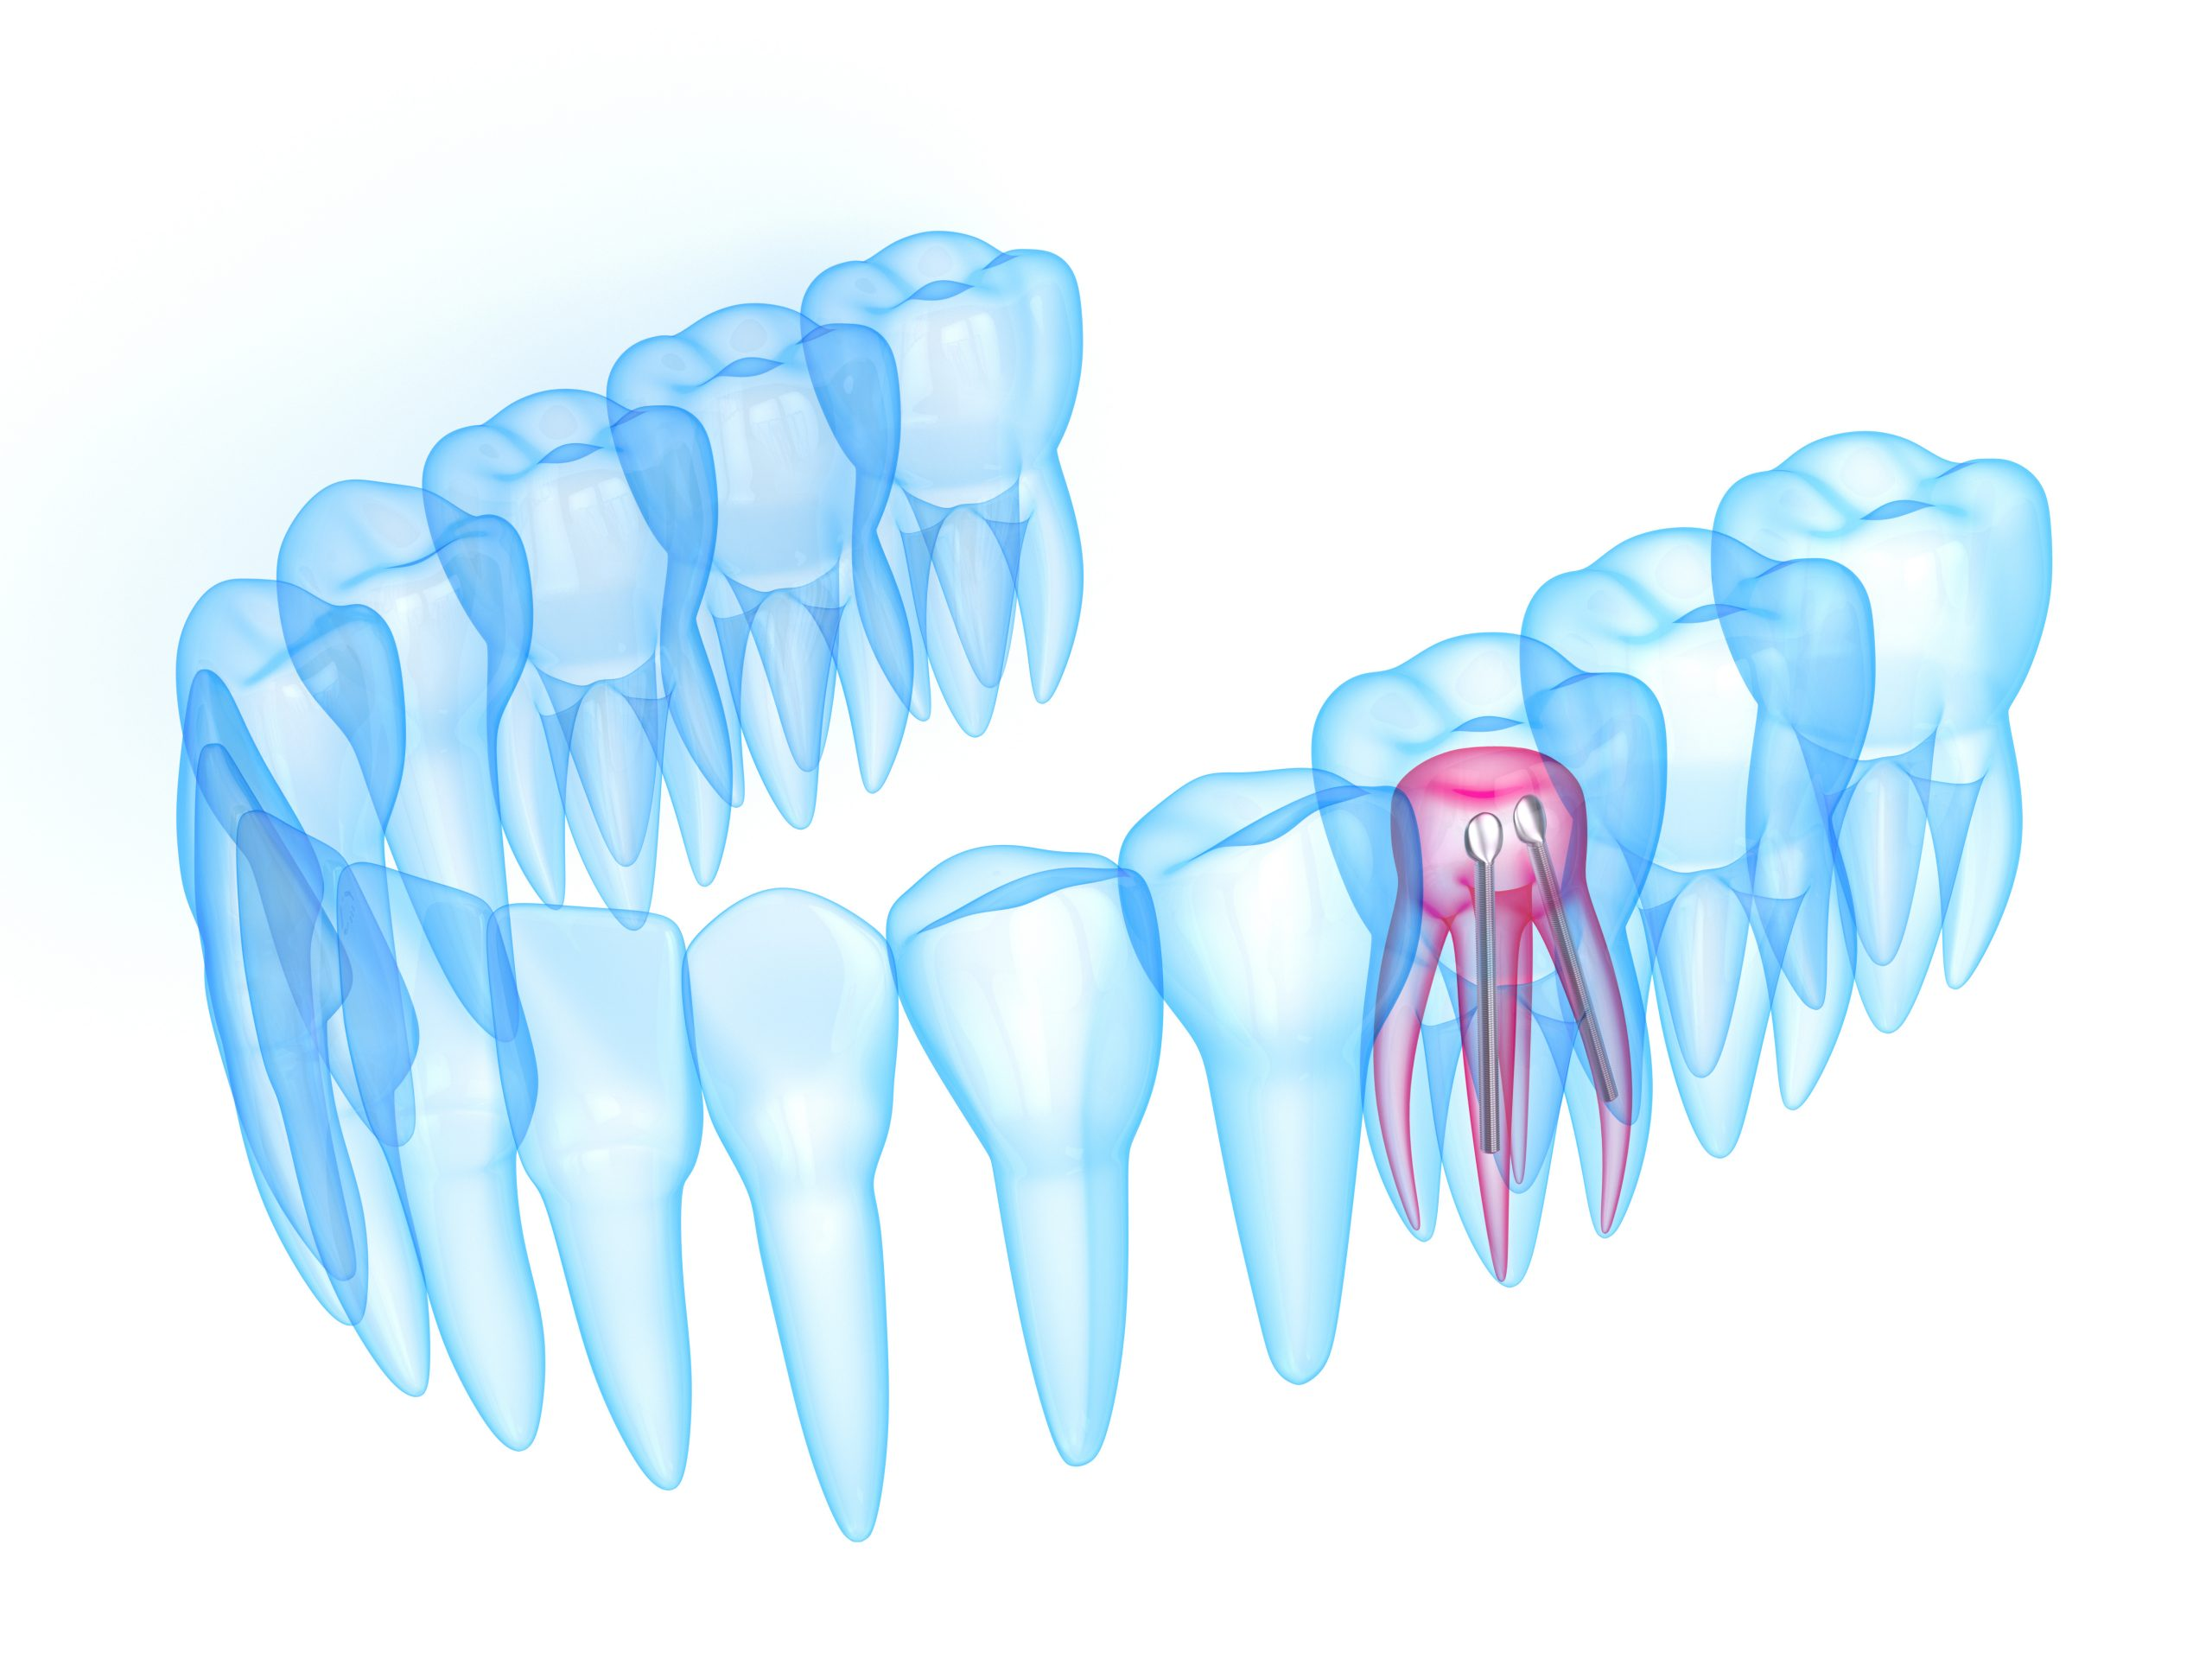 3d render of x-ray toothing with stainless steel dental post over white background. Endodontic treatment concept